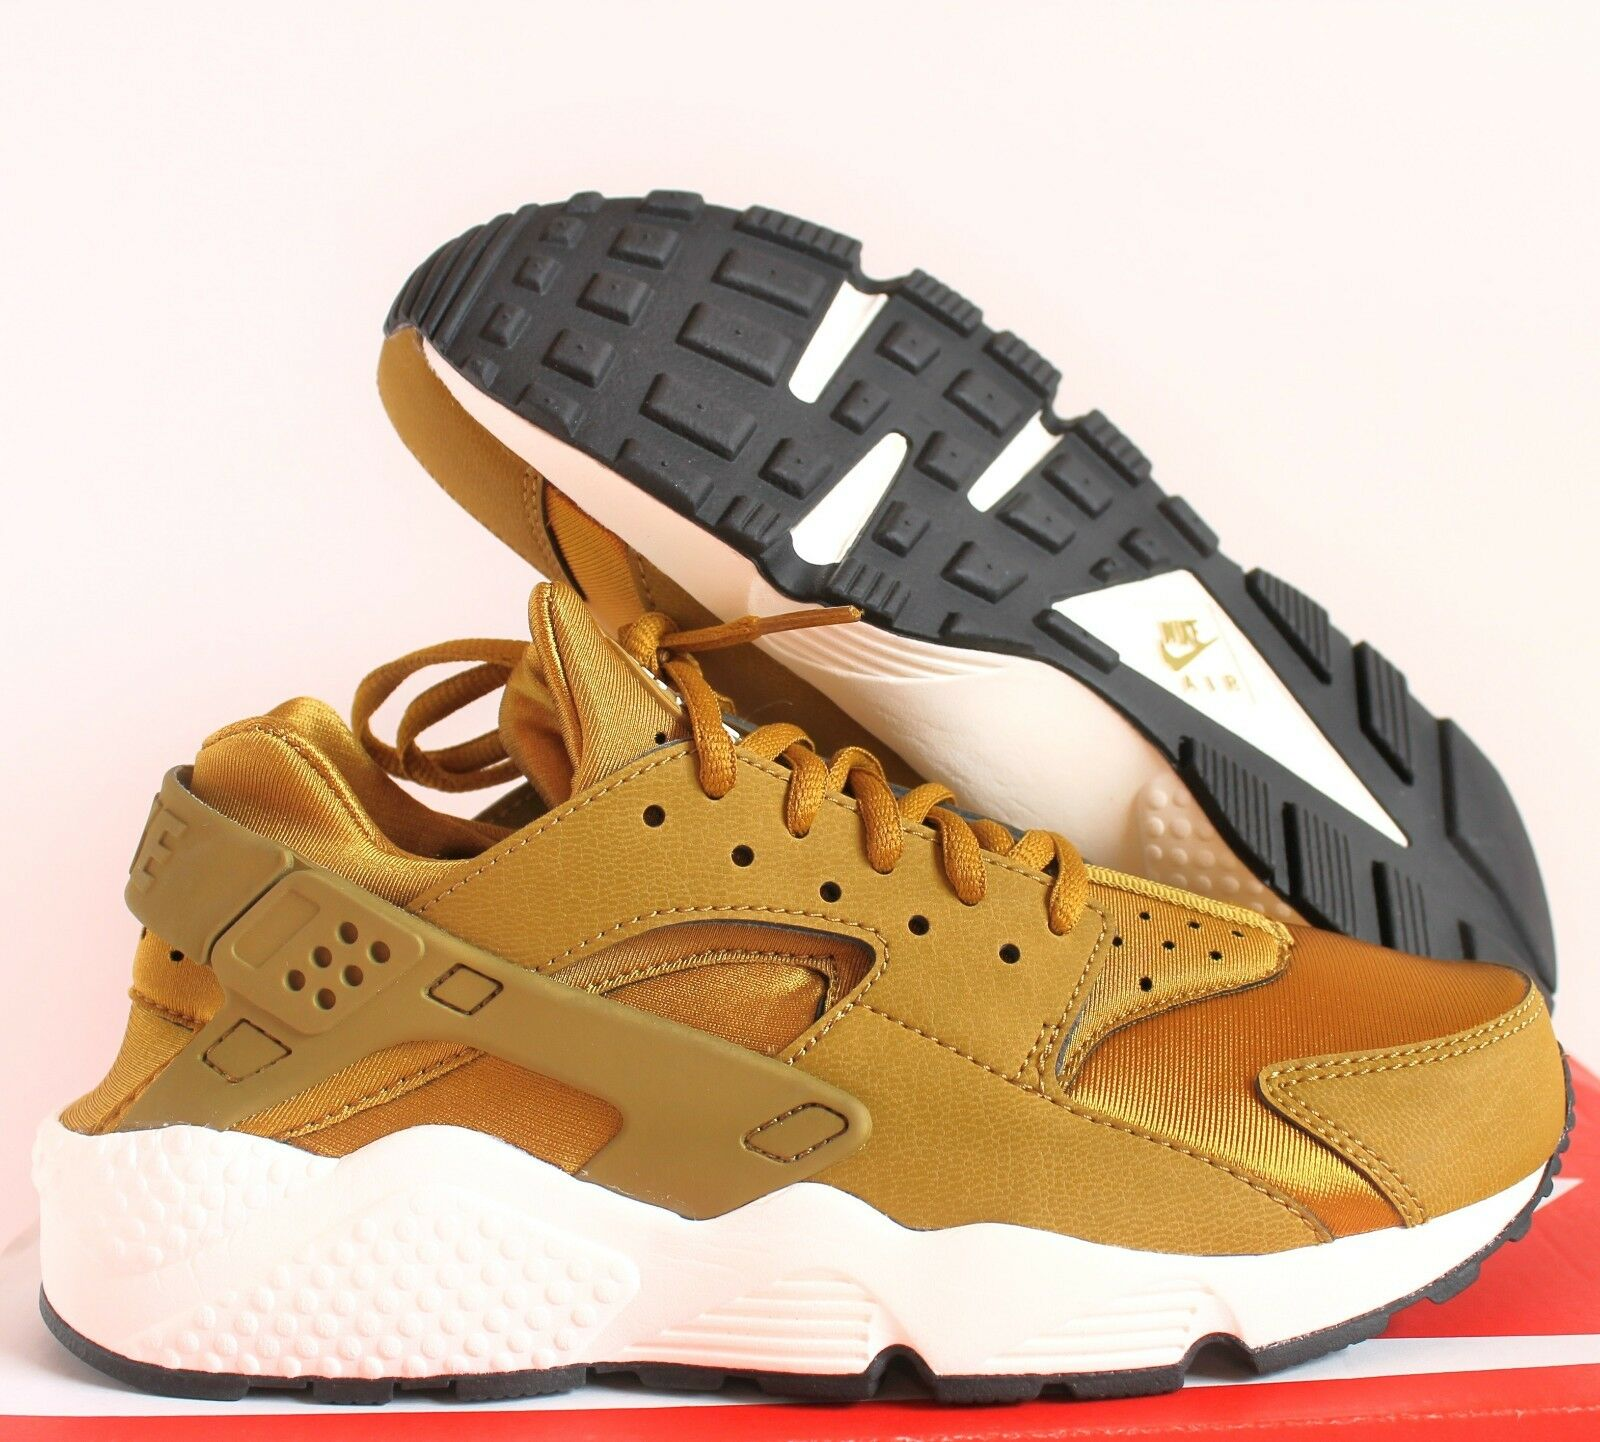 NIKE WOMEN AIR HUARACHE RUN BRONZINE-SAIL-BLACK SZ 7.5 [634835-700]